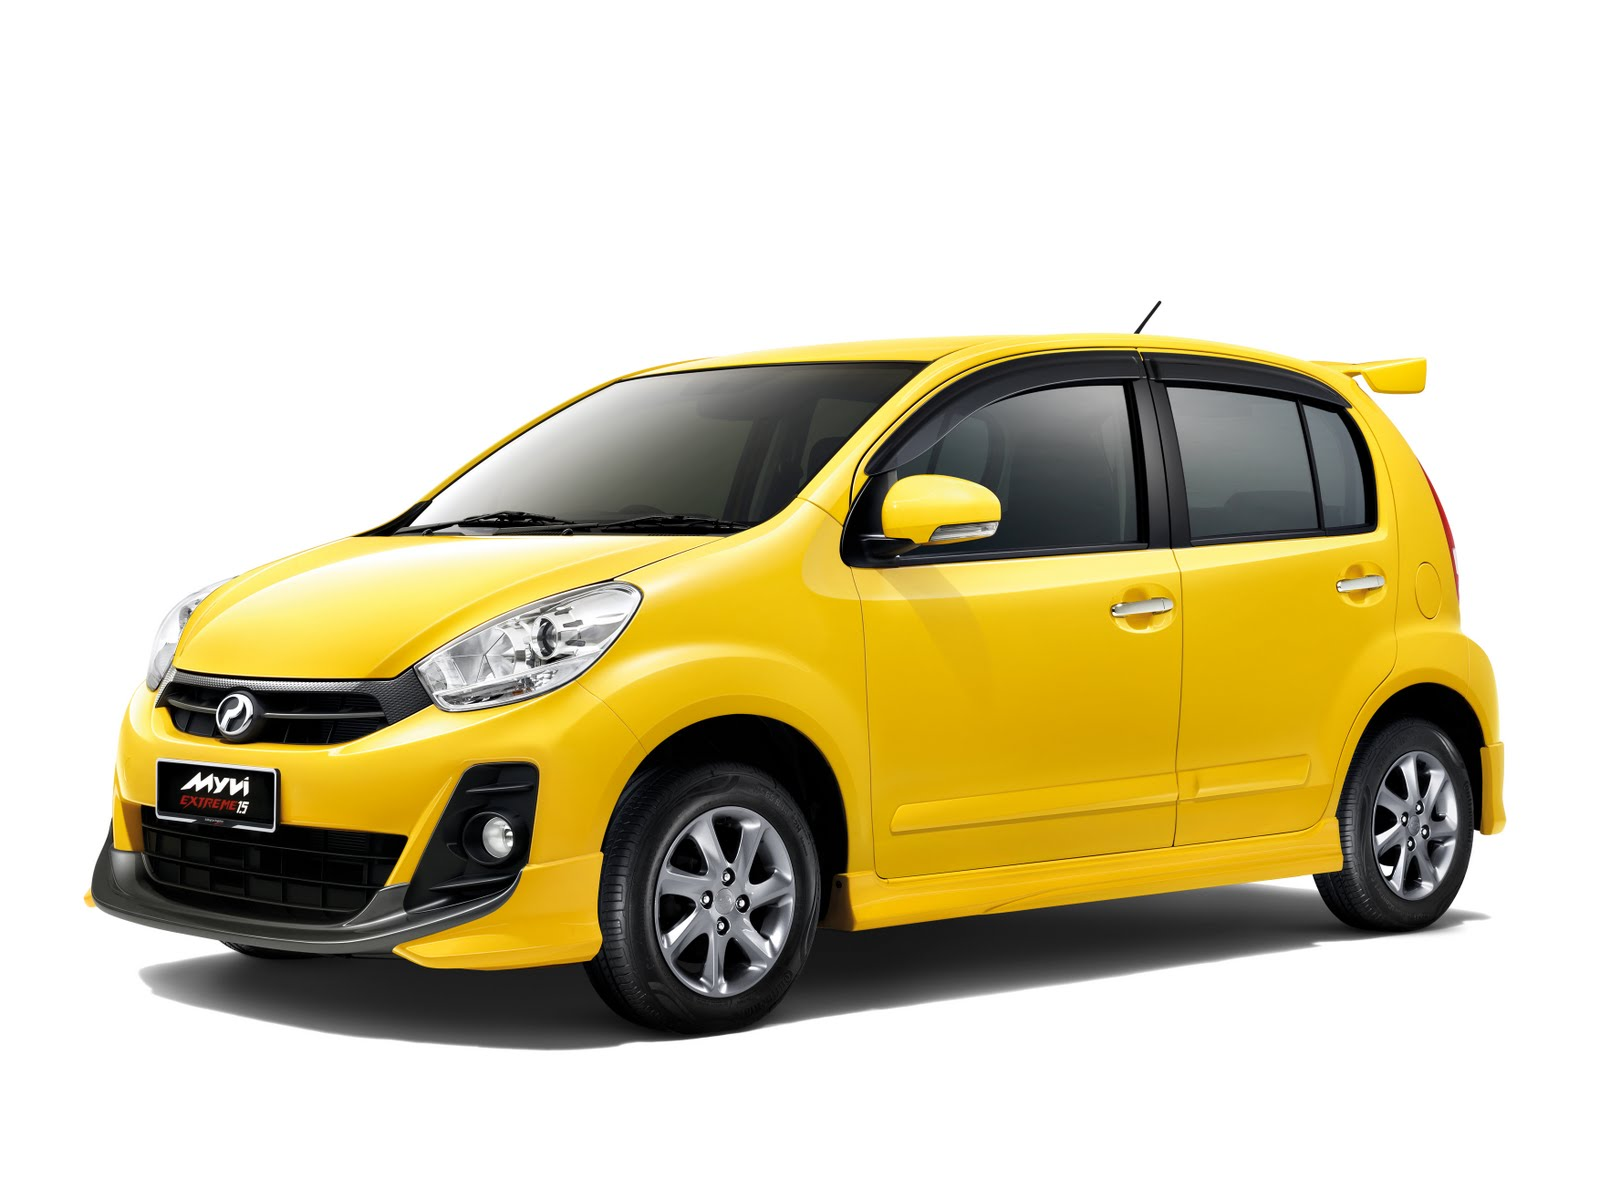 Myvi Se 1.5 >> Auto Insider Malaysia – Your Inside Scoop For The Car Enthusiast